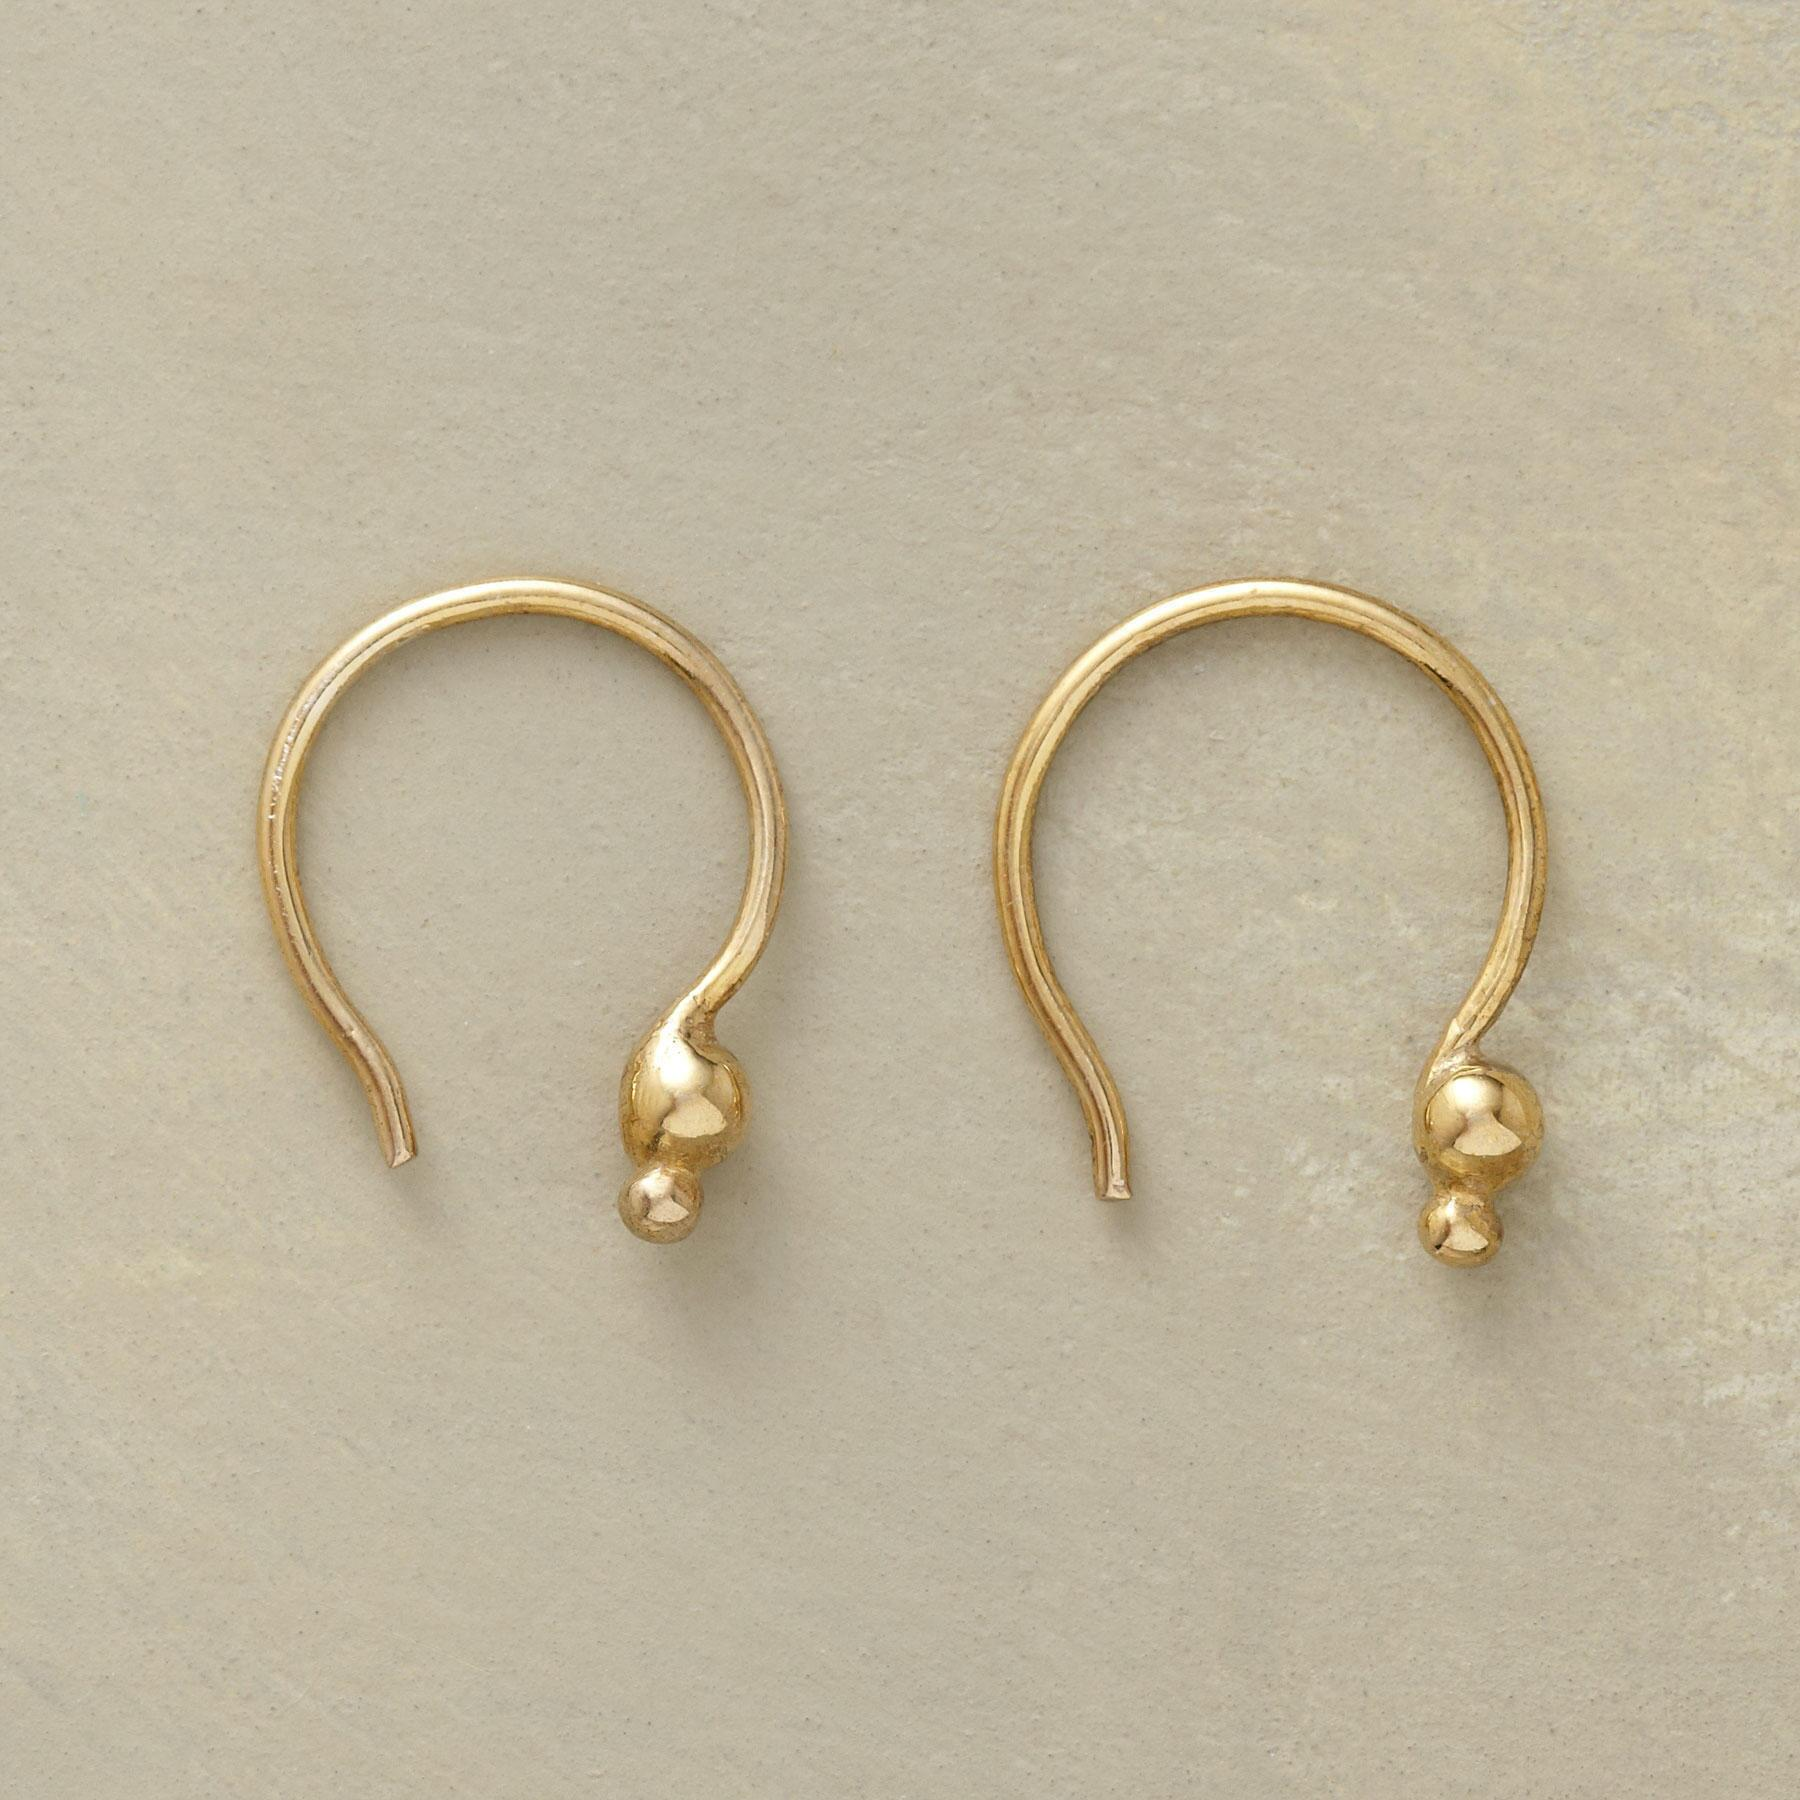 18KT GOLD PLATE DOUBLE DOT EARRINGS: View 1